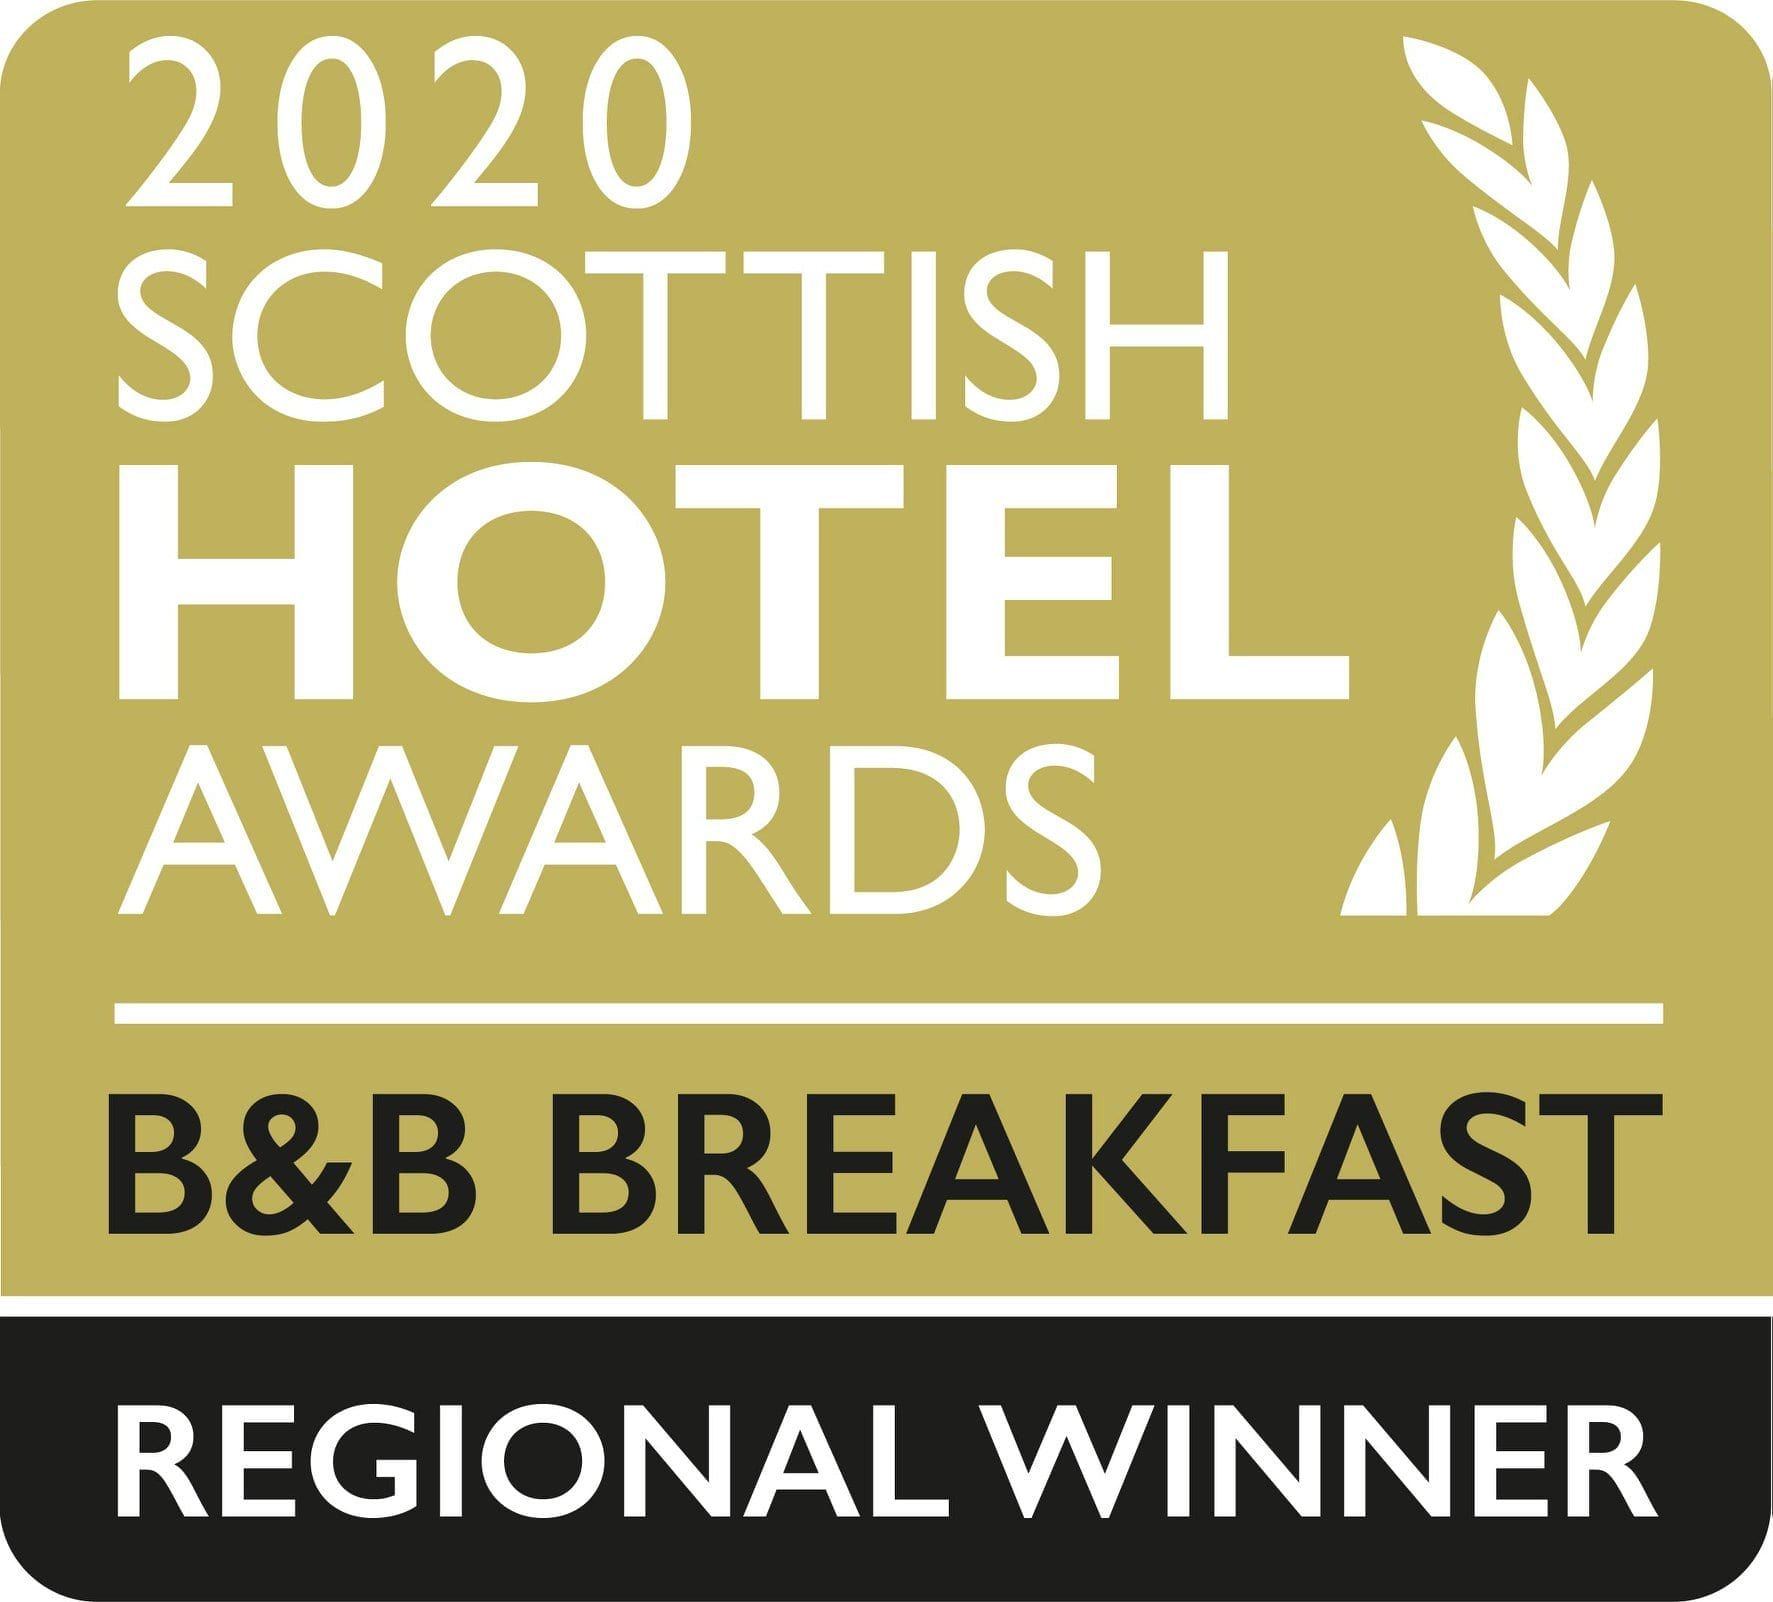 Regional B&B Breakfast of the Year - 2020 Scottish Hotel Awards